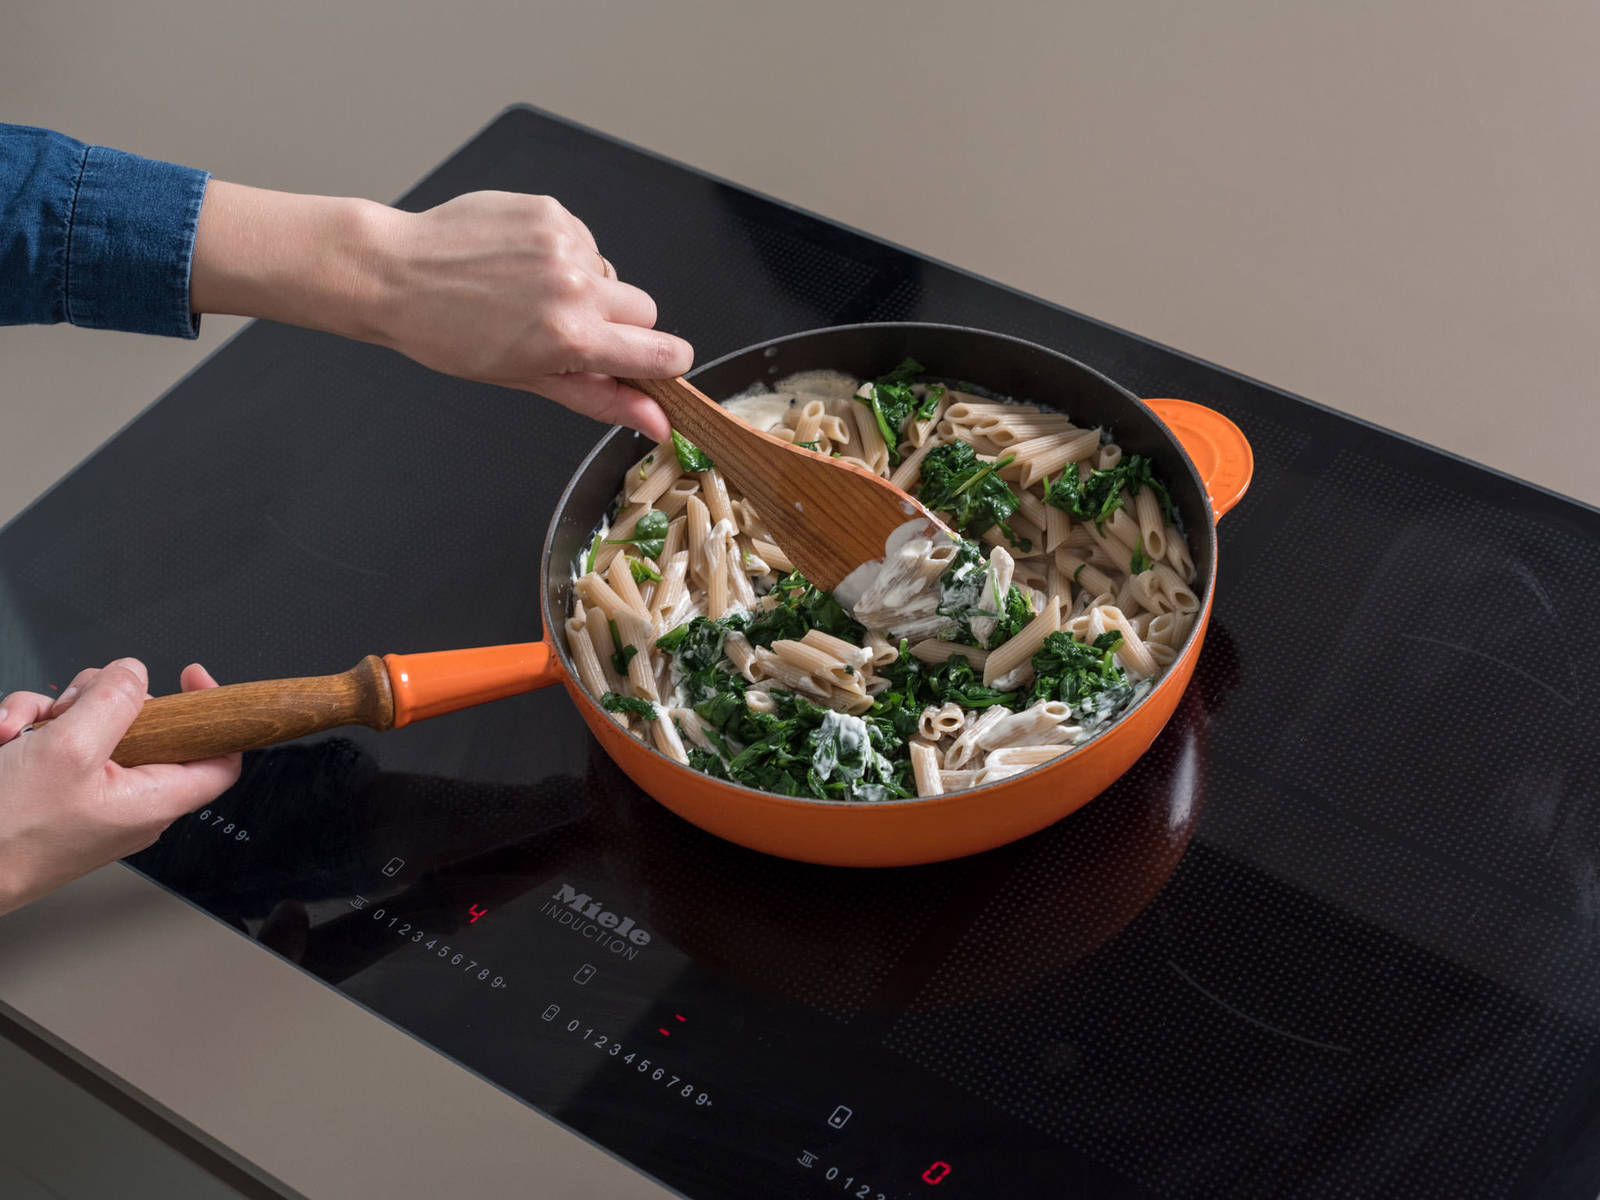 Add spinach and penne to the frying pan and stir. Add a few tablespoons of the reserved pasta water for desired consistency. Season with salt and pepper and serve with toasted pine nuts, more crumbled goat cheese, and Parmesan. Enjoy!